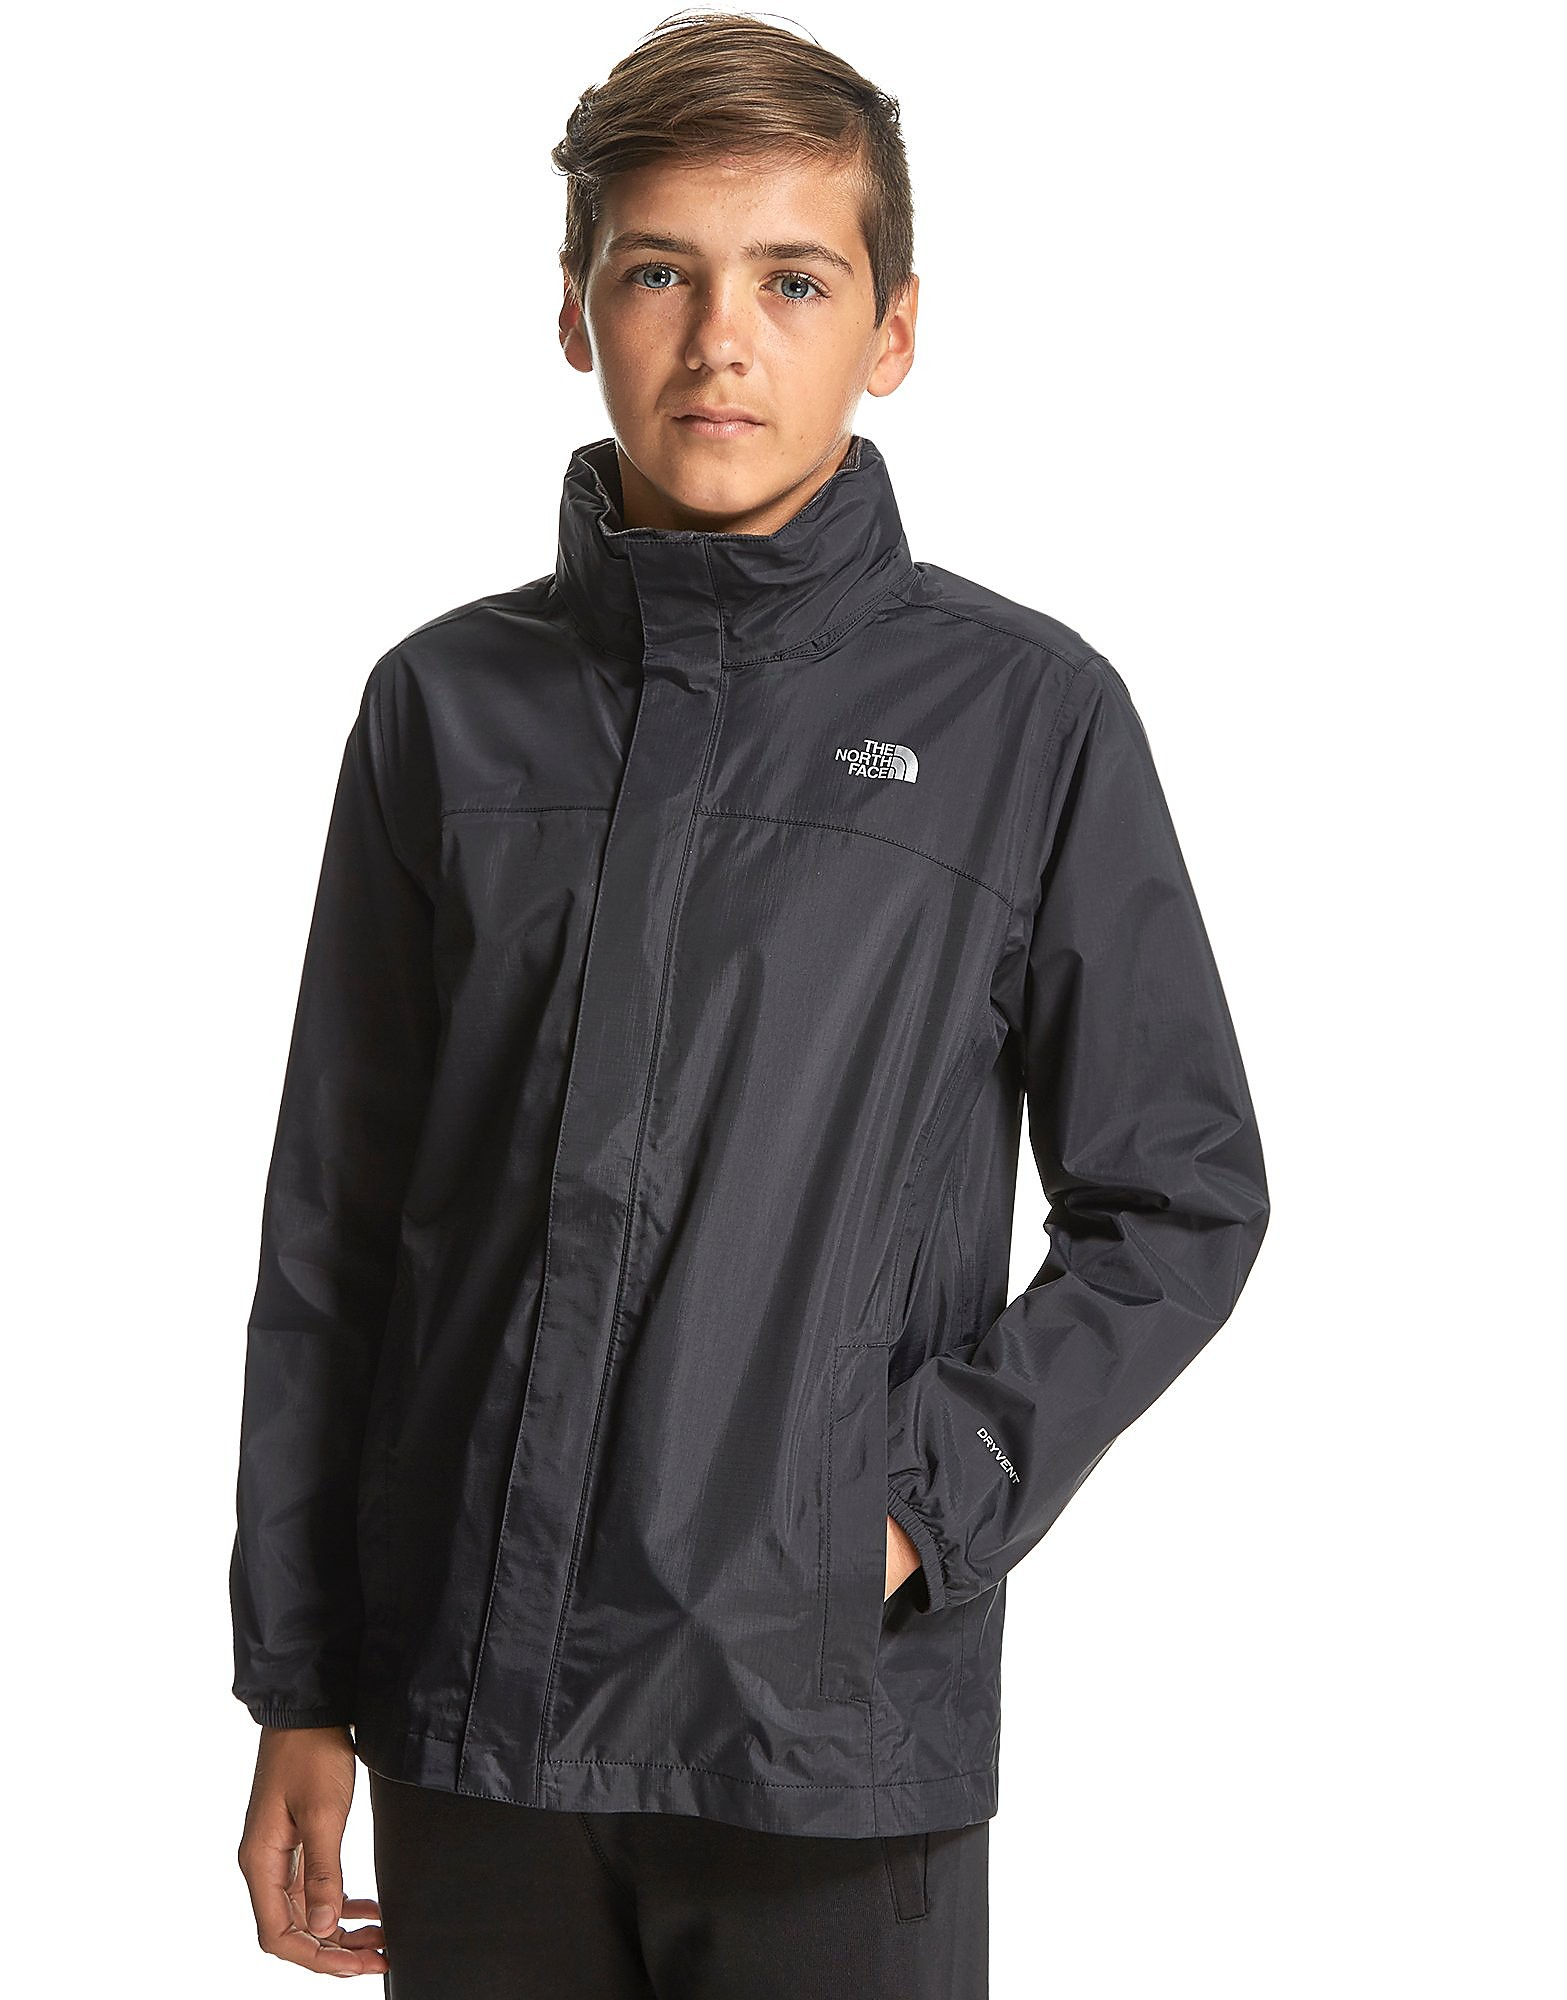 The North Face Resolve Light-jas voor tieners